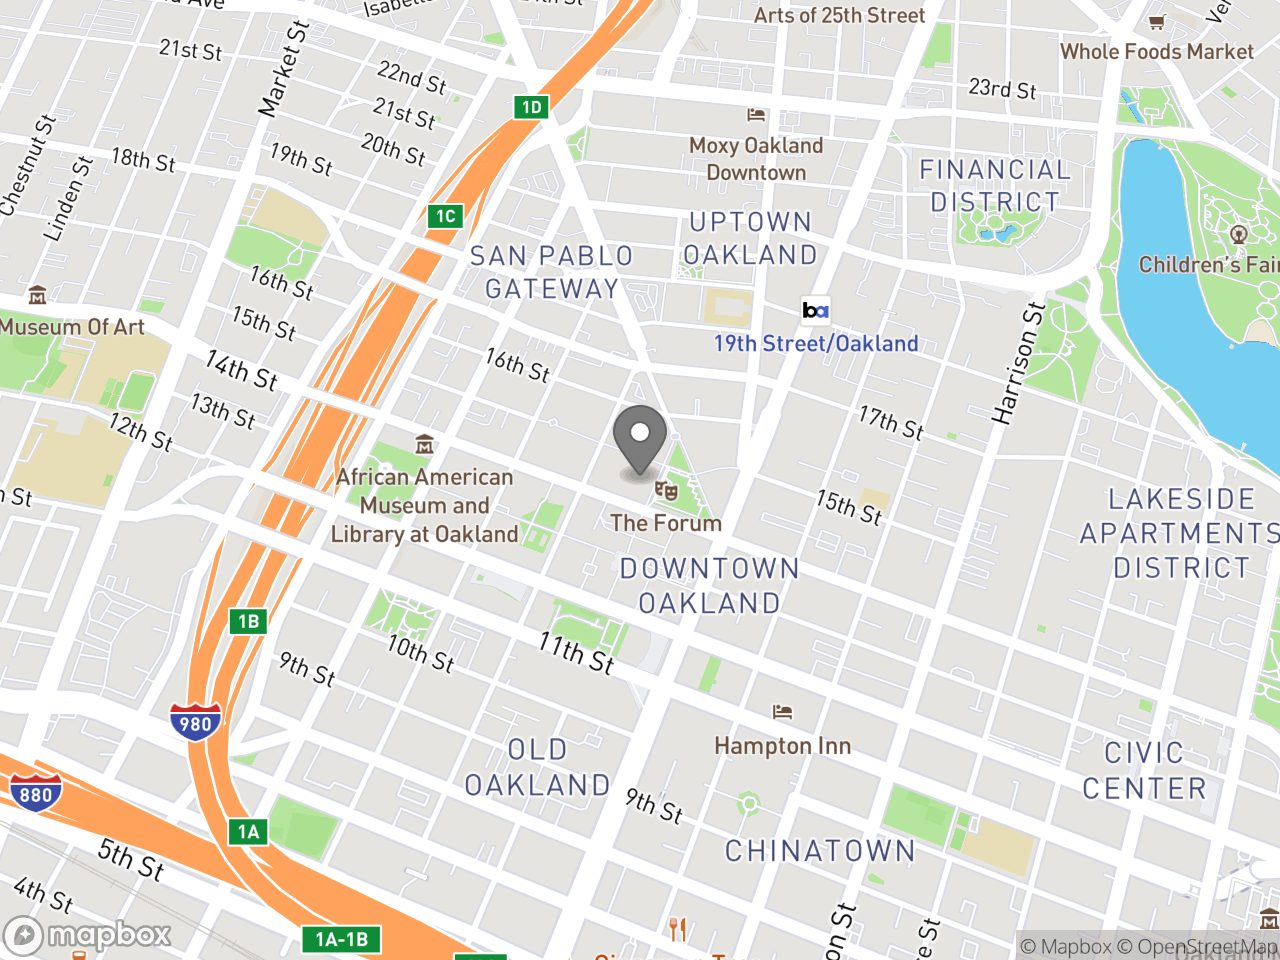 Map location for Rent Board Panel Meeting December 6, 2018, located at 1 Frank H. Ogawa Plaza in Oakland, CA 94612